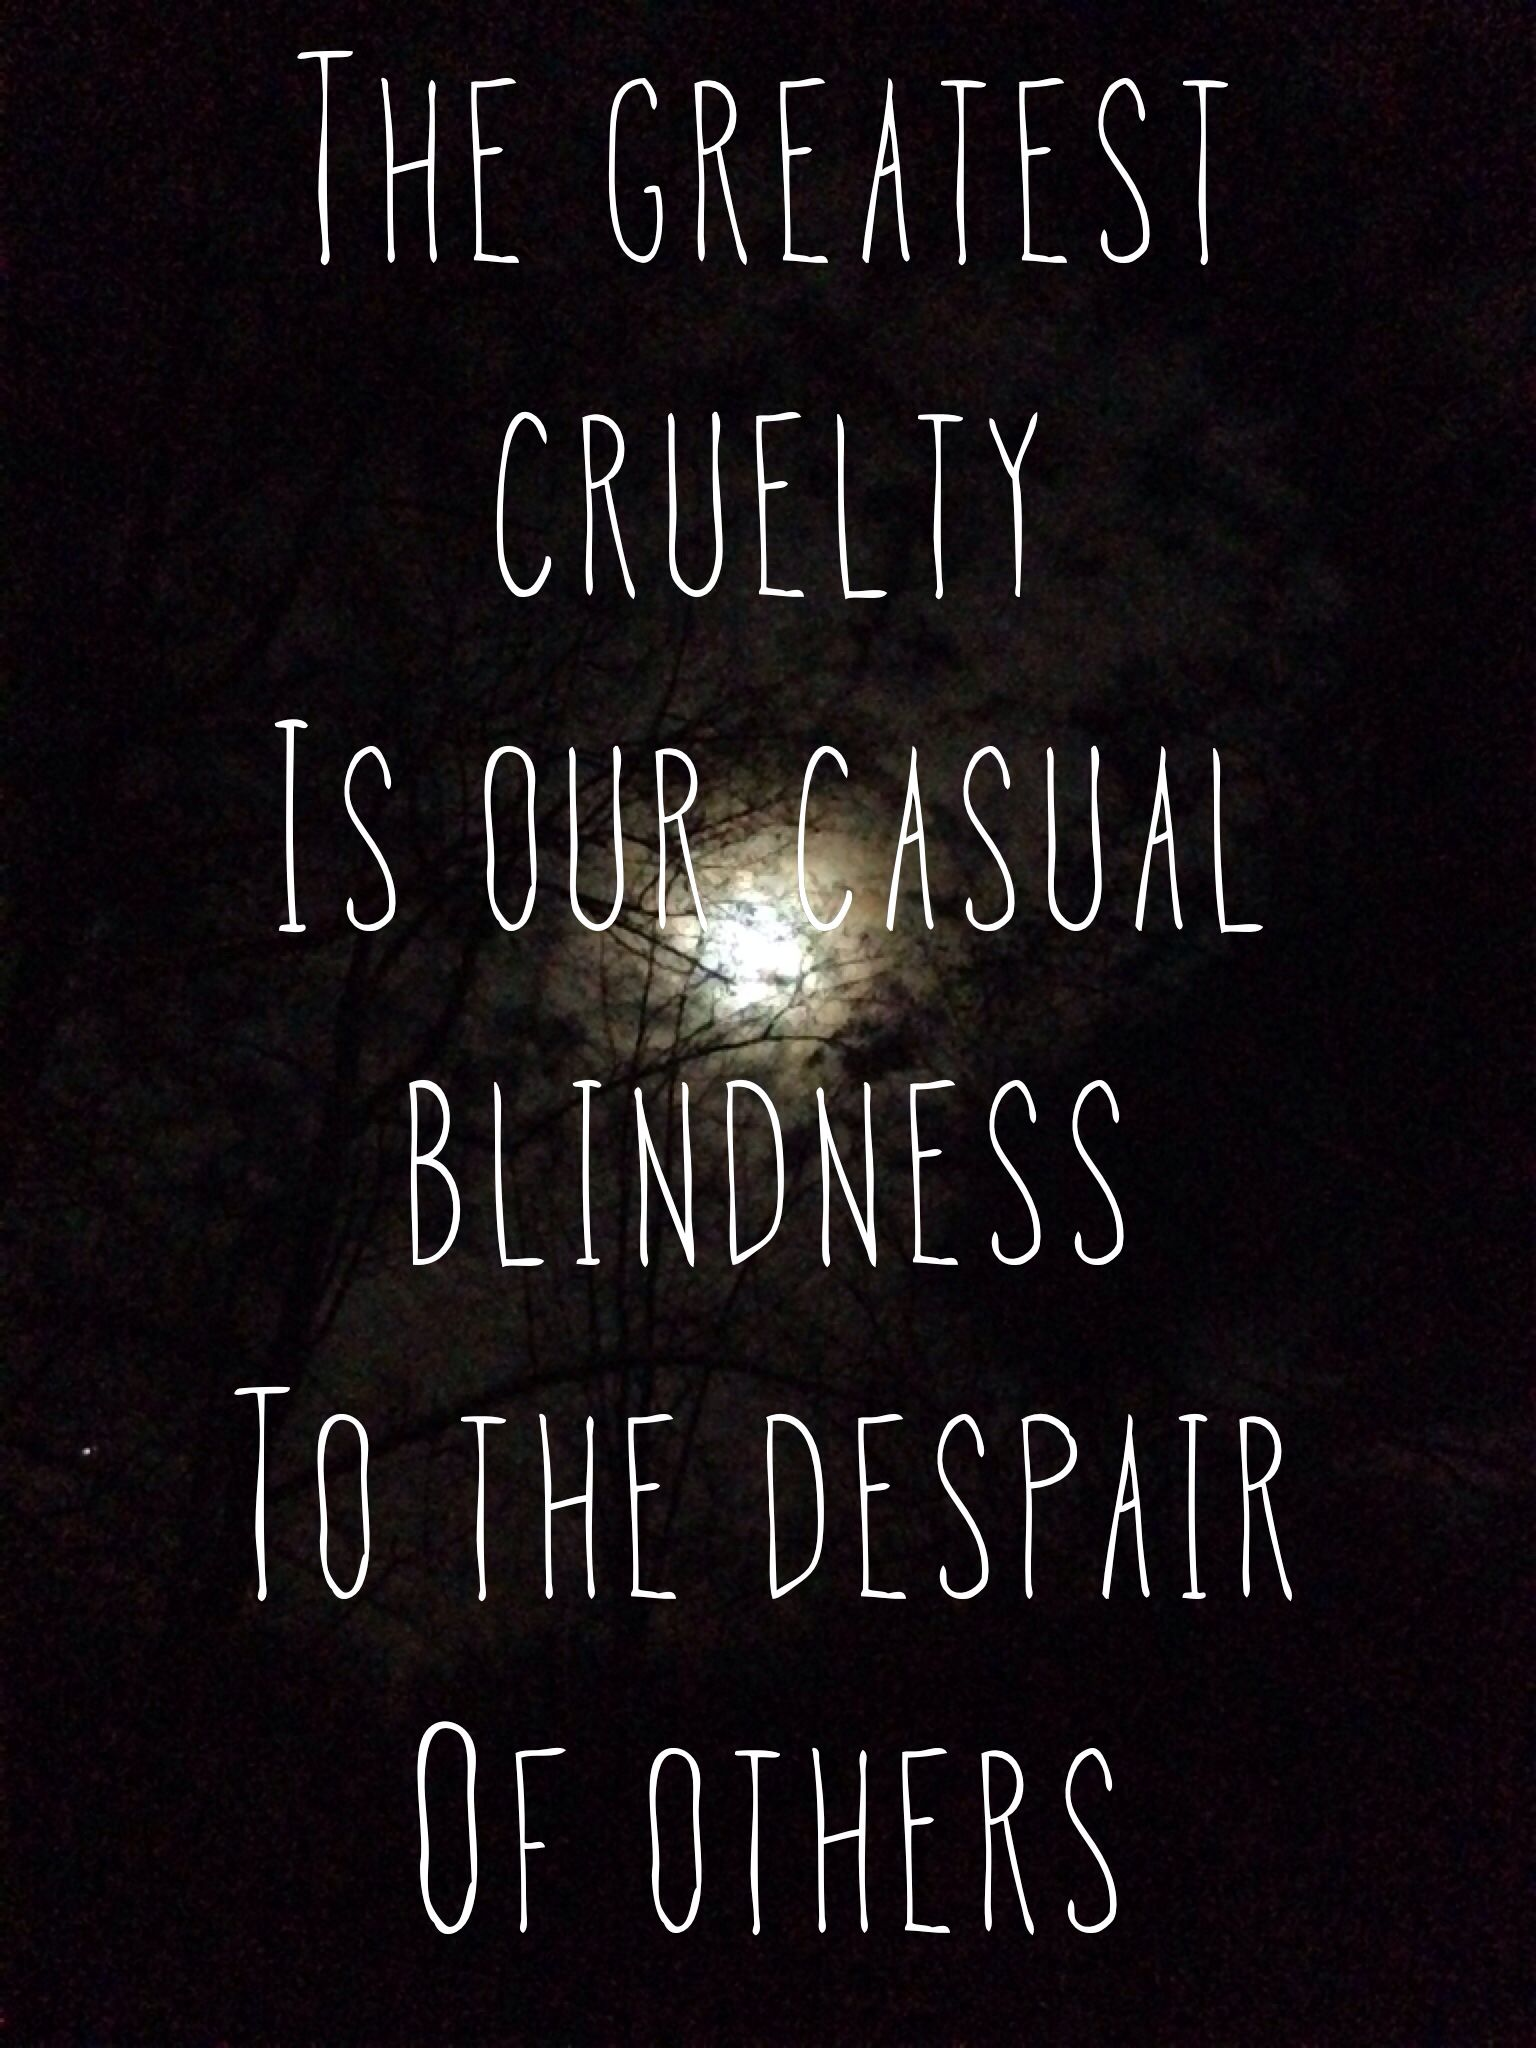 The greatest cruelty is our casual blindness to the despair